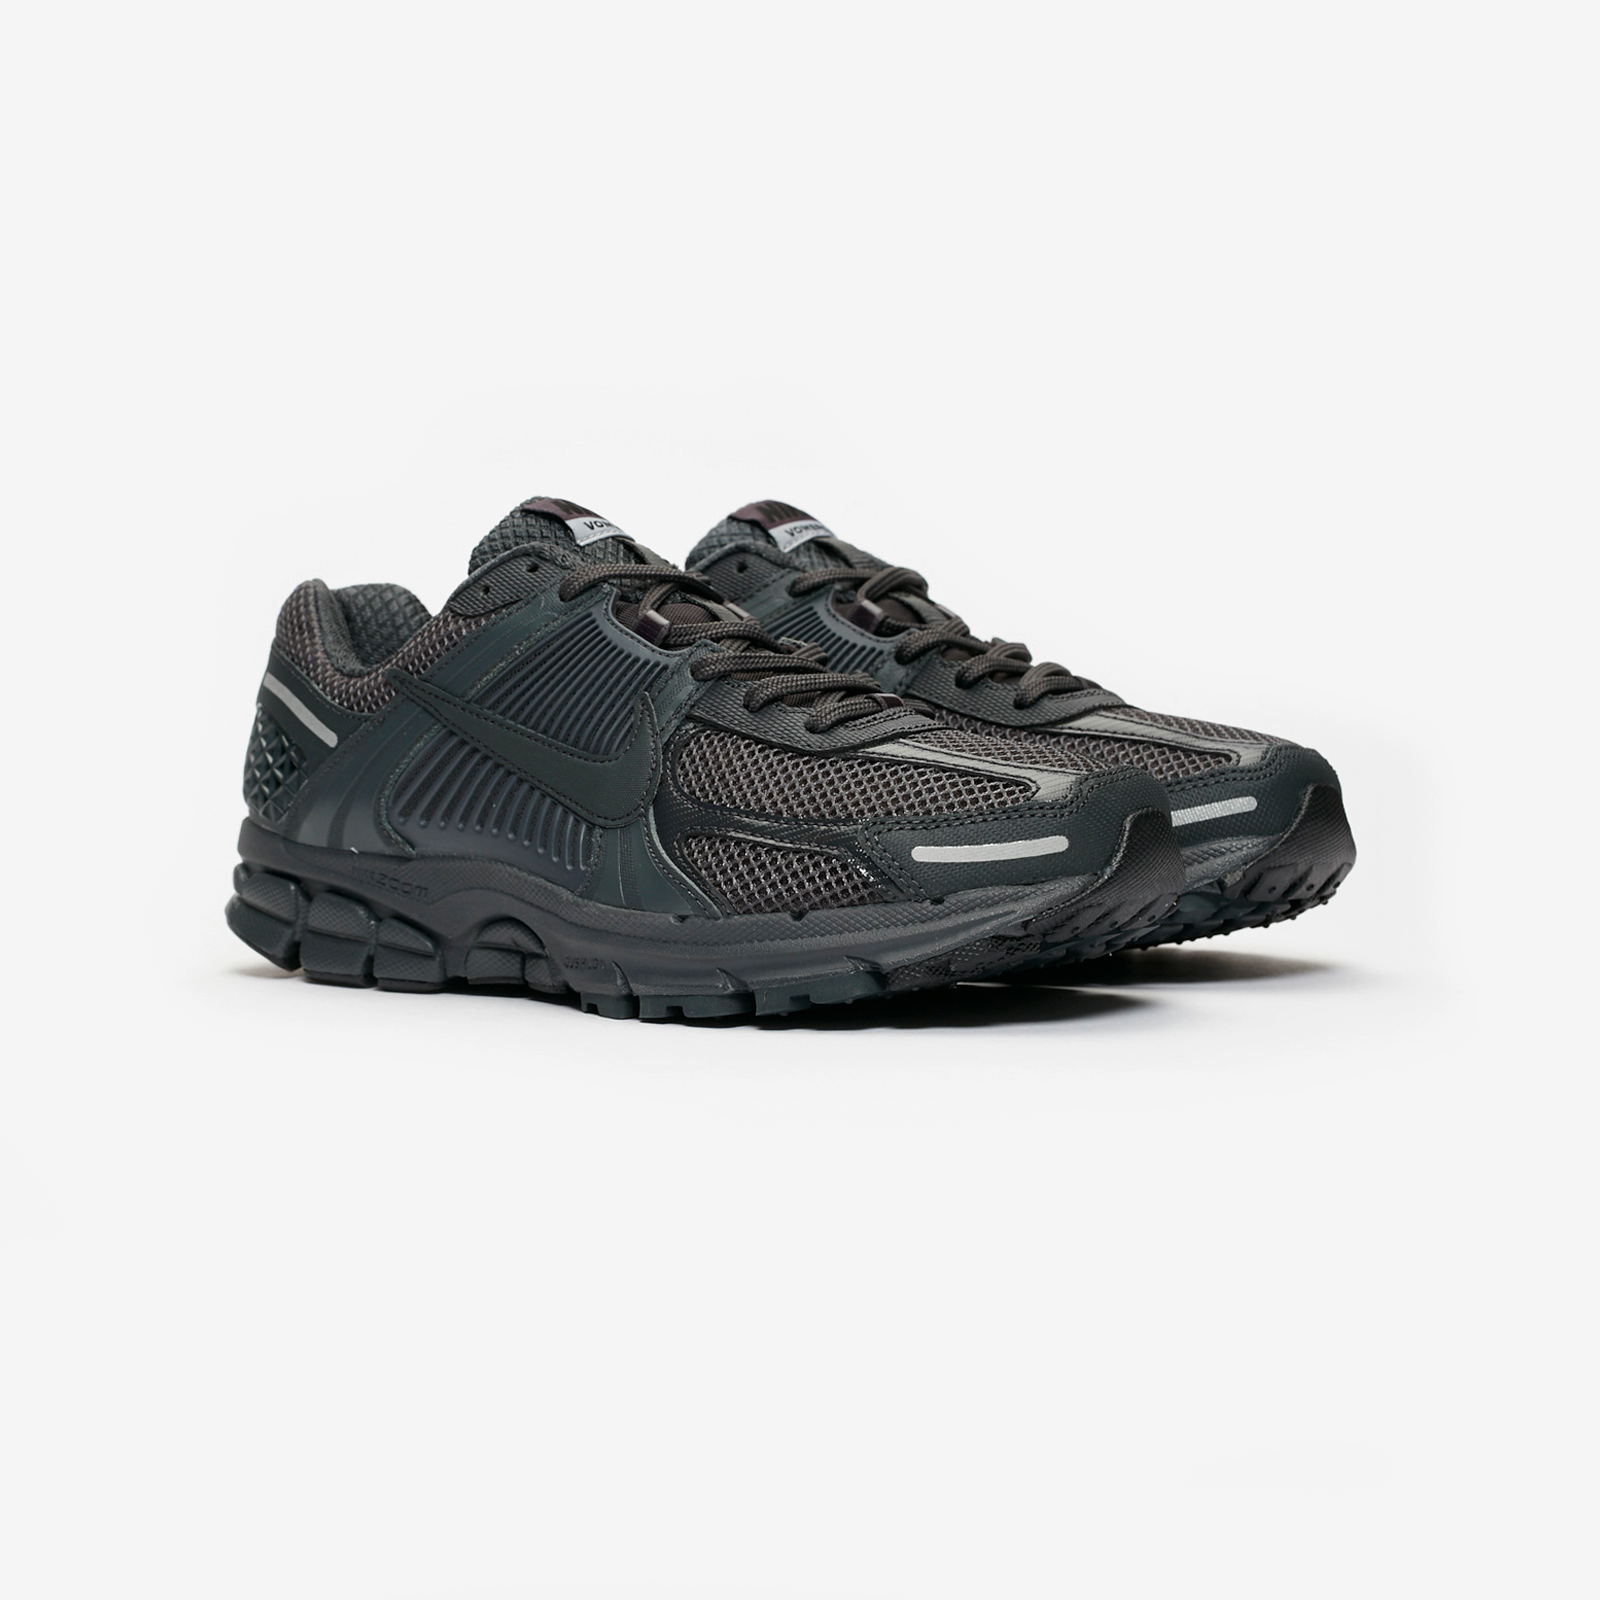 cdc5a99666c05 Nike Zoom Vomero 5 SP - Bv1358-002 - Sneakersnstuff